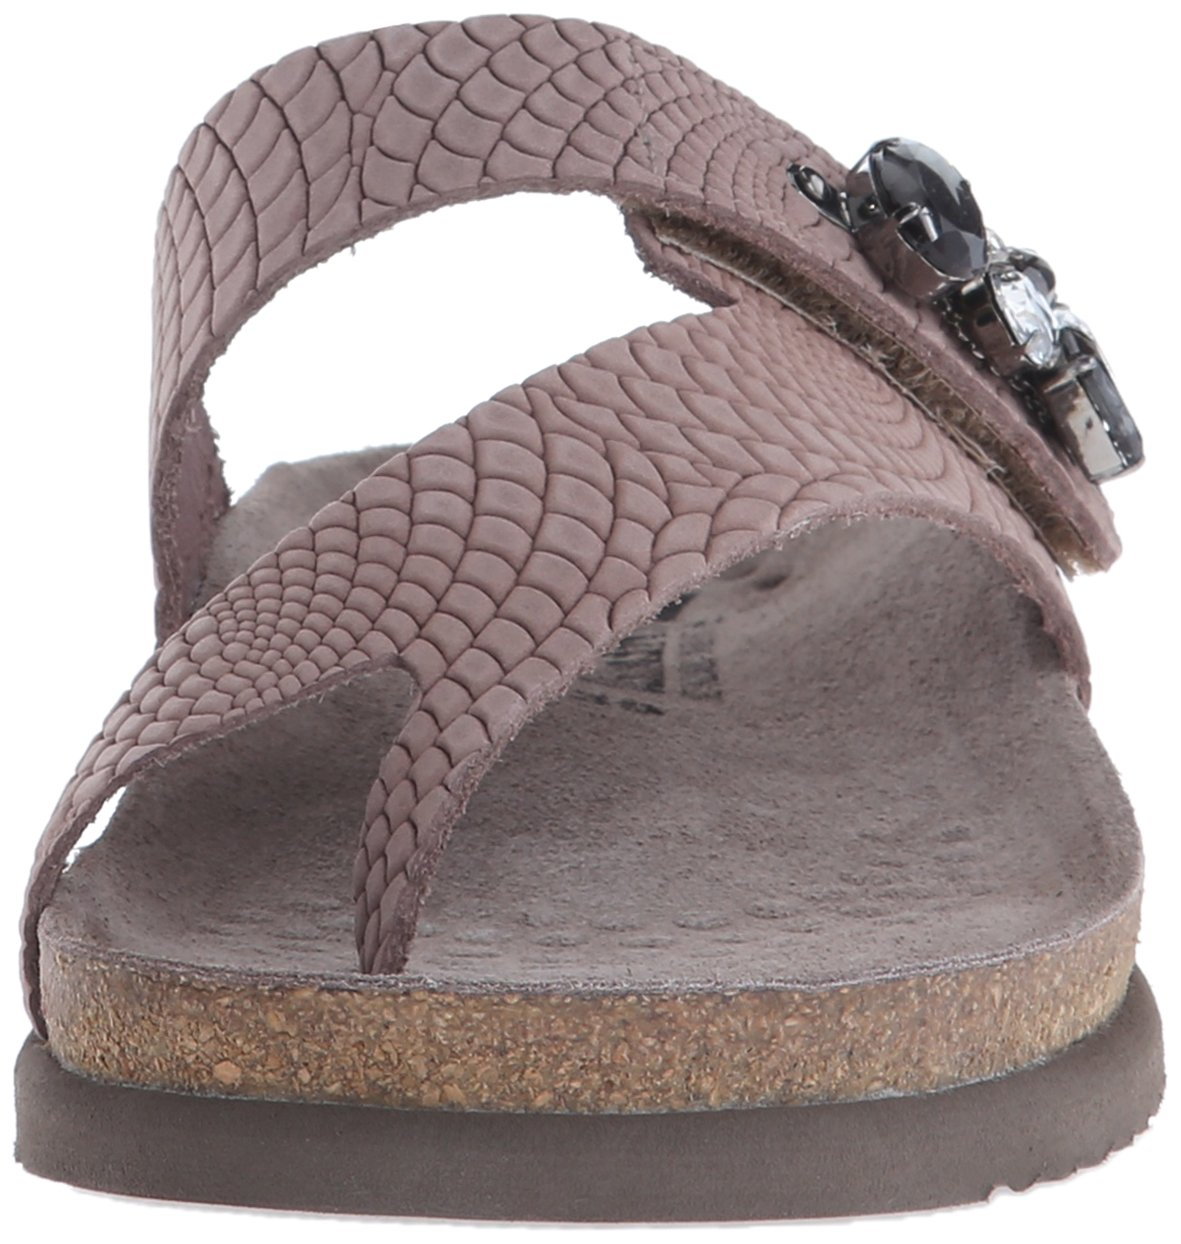 Mephisto Women's Halice Flip Flop, Old Pink Rio, 9 M US by Mephisto (Image #4)